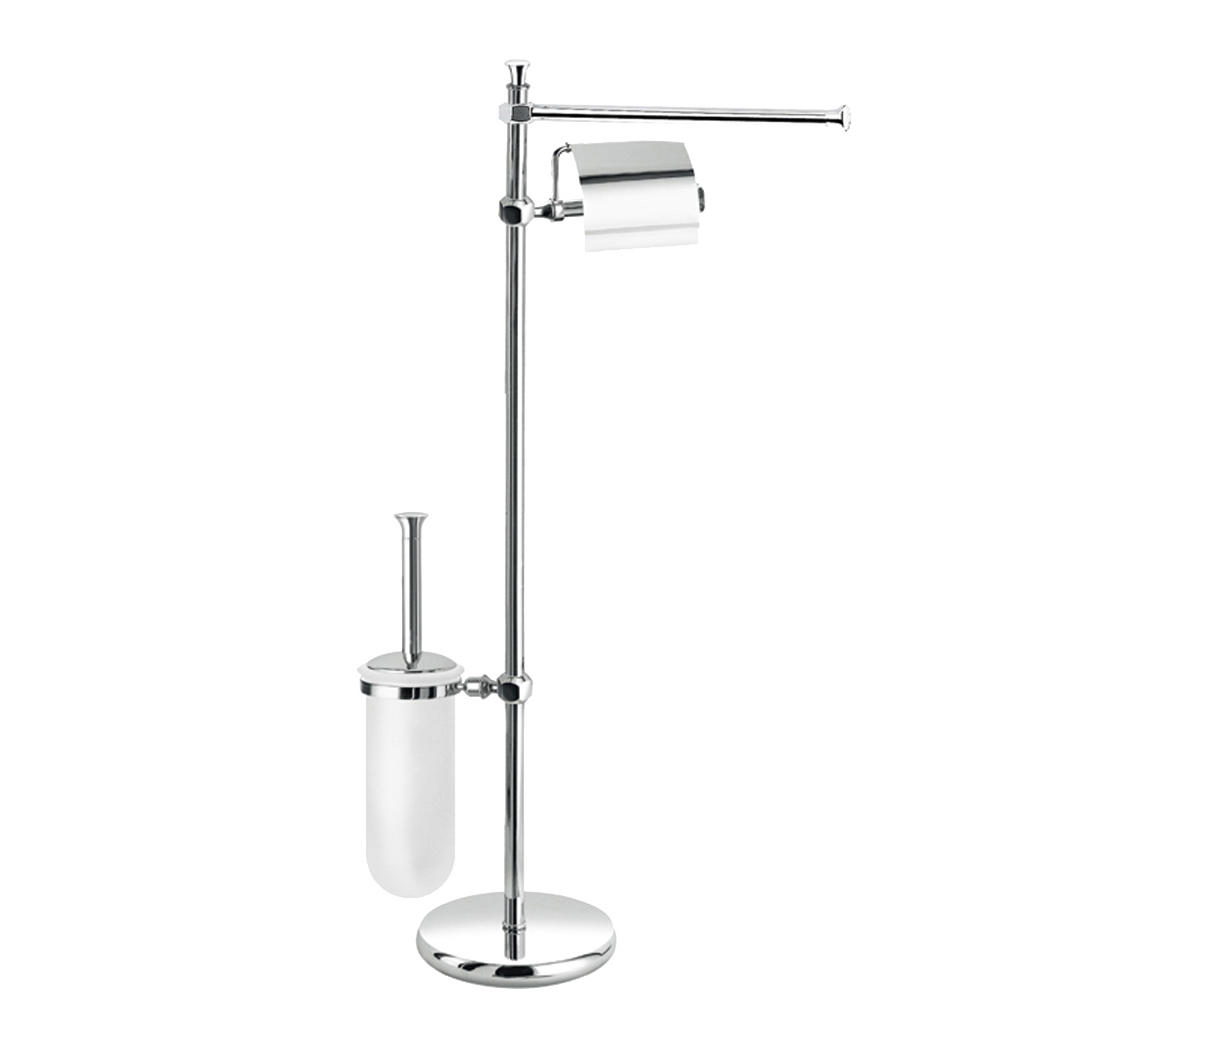 Classic bathroom accessories toilet stands from fir for Bathroom accessories stand